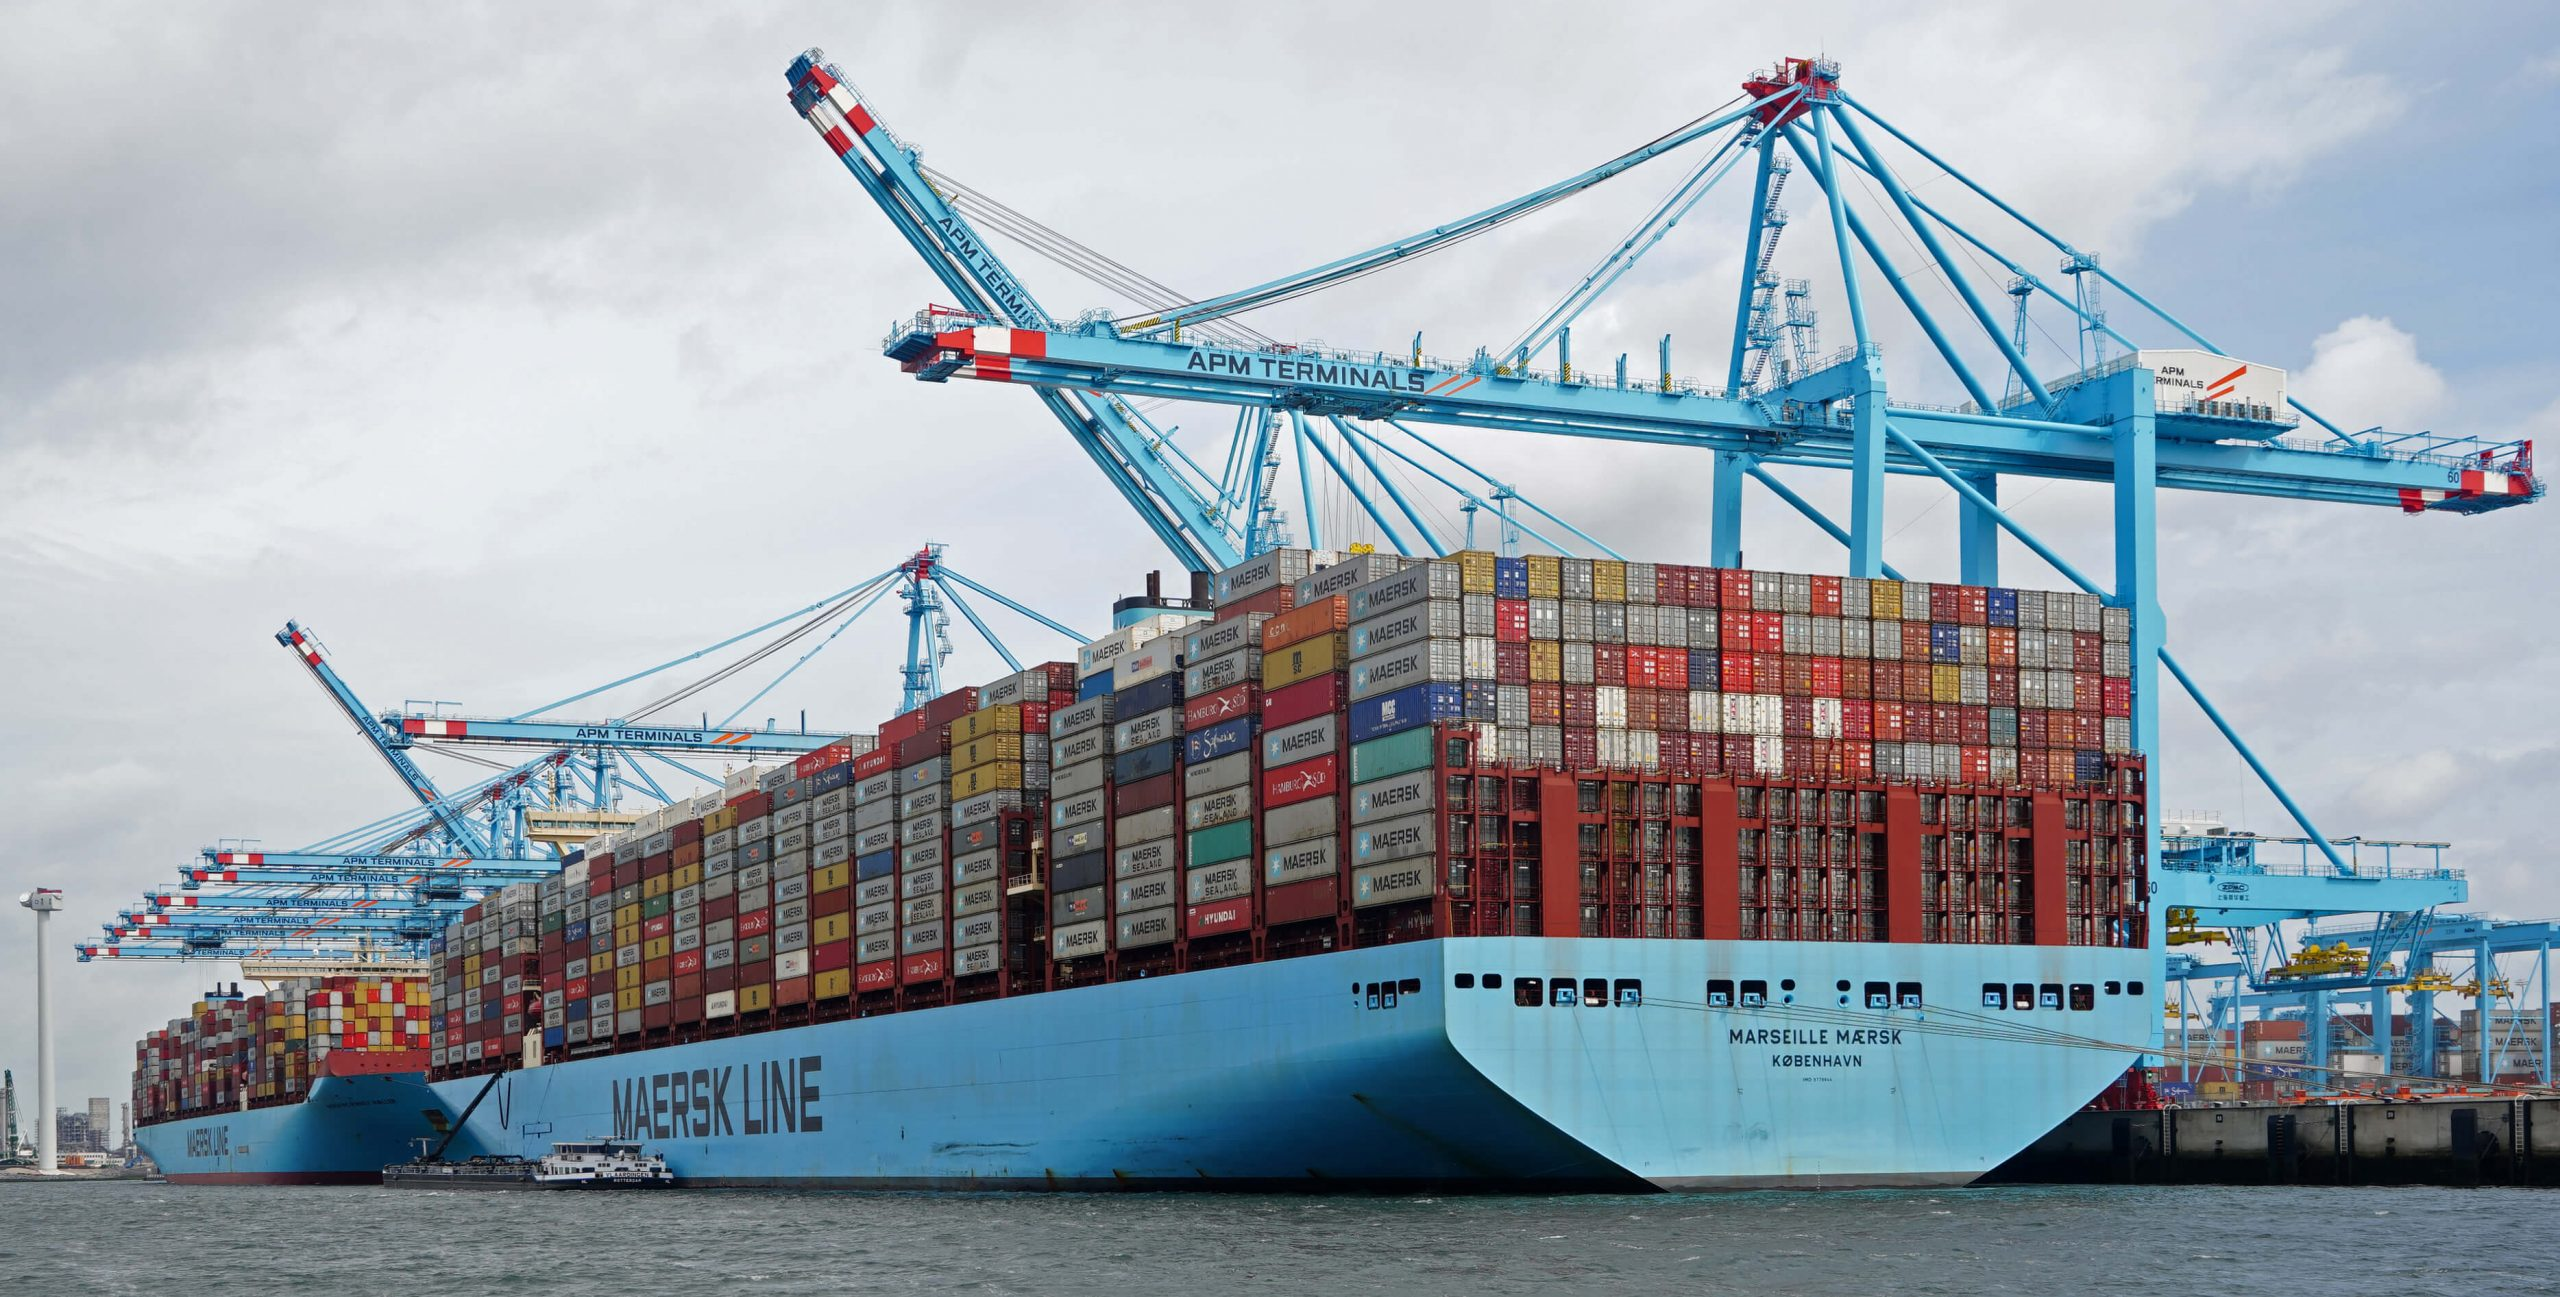 A large cargo ship from the Maersk Line